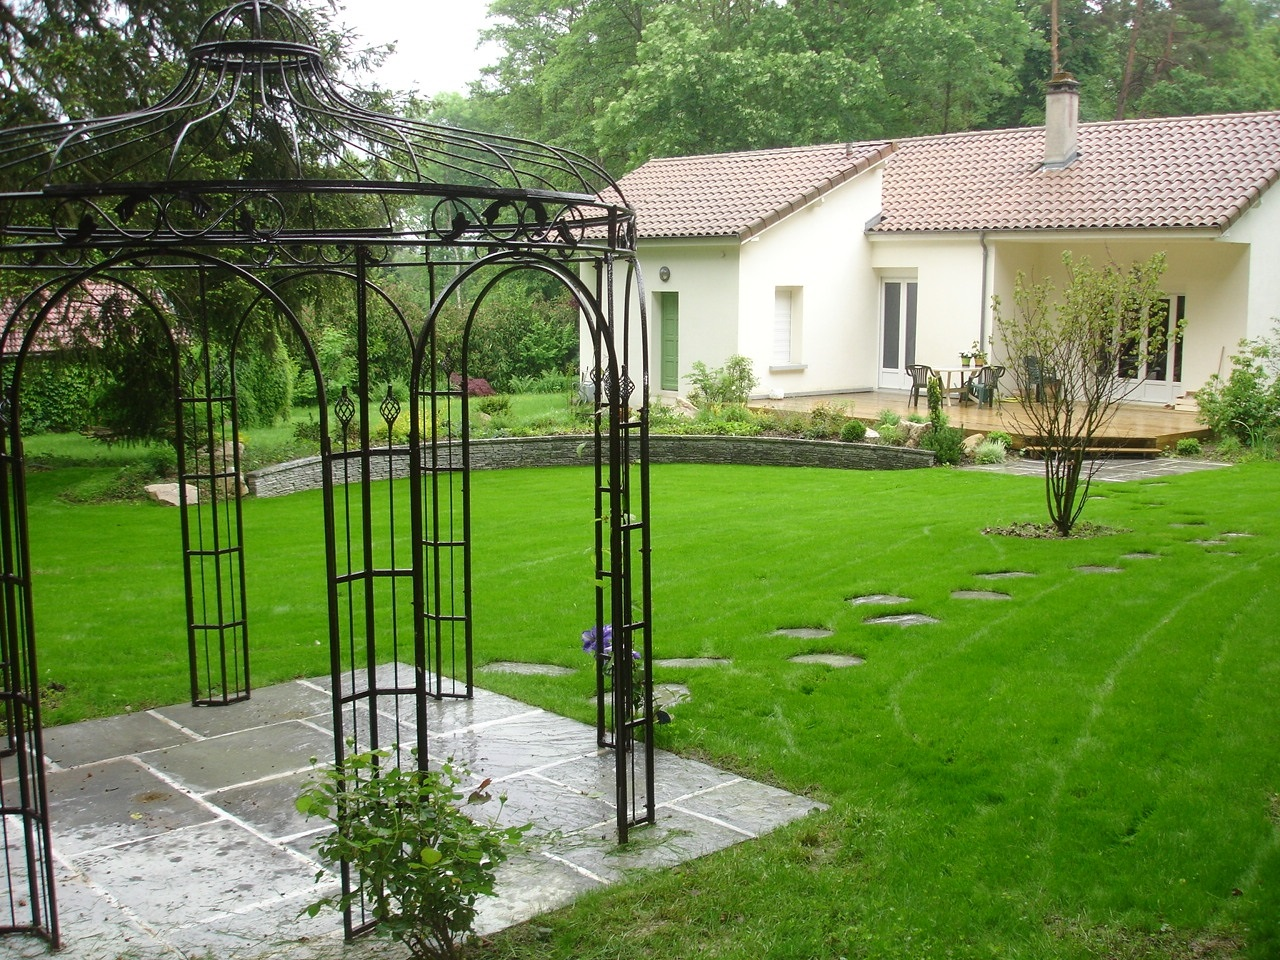 Gloriette fer forge fashion designs for Pergola fer forge pas cher